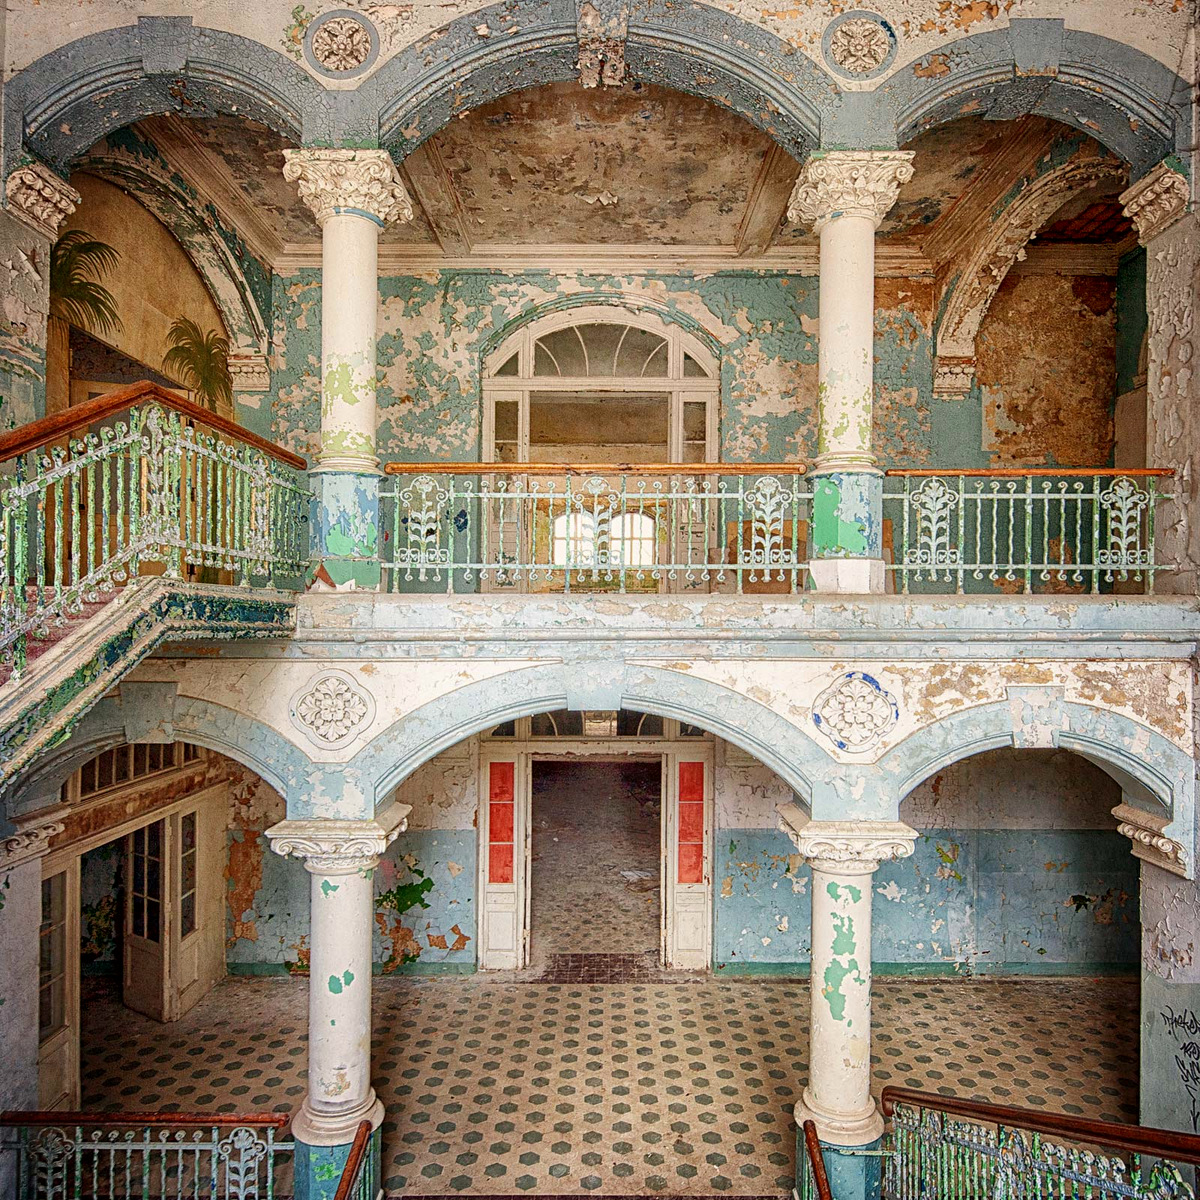 The beauty of Decay III by Markus Studtmann